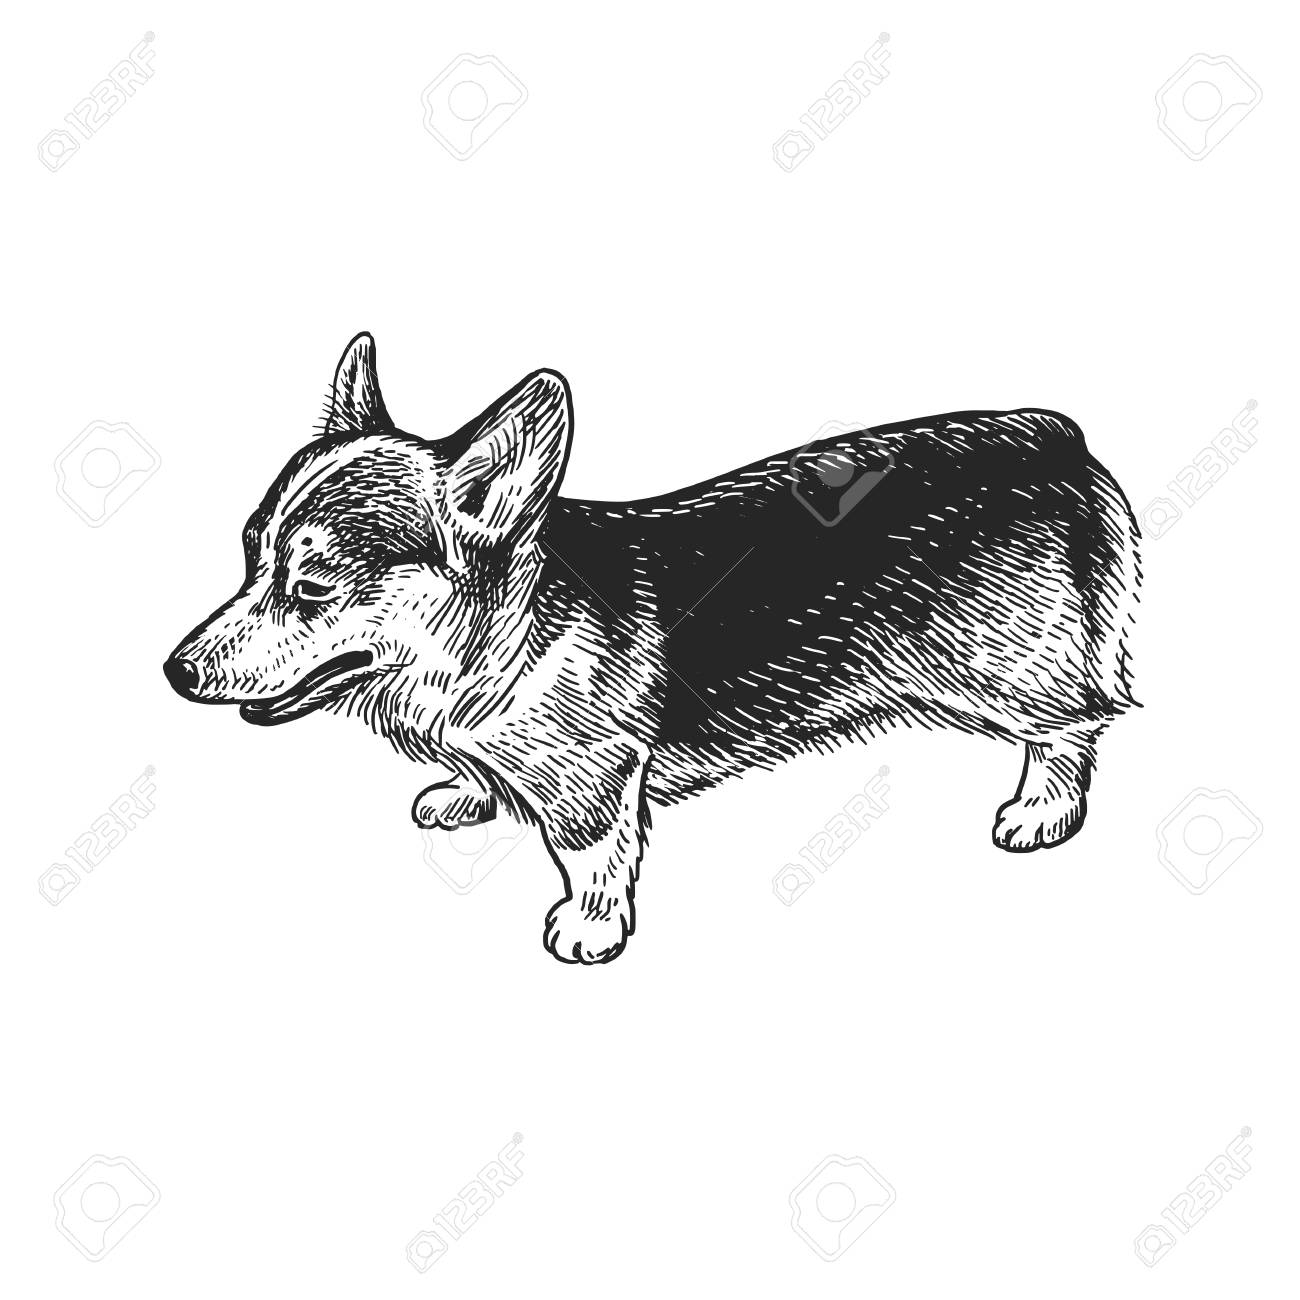 Cute Puppy Home Pet Isolated On White Background Sketch Vector Royalty Free Cliparts Vectors And Stock Illustration Image 109815348